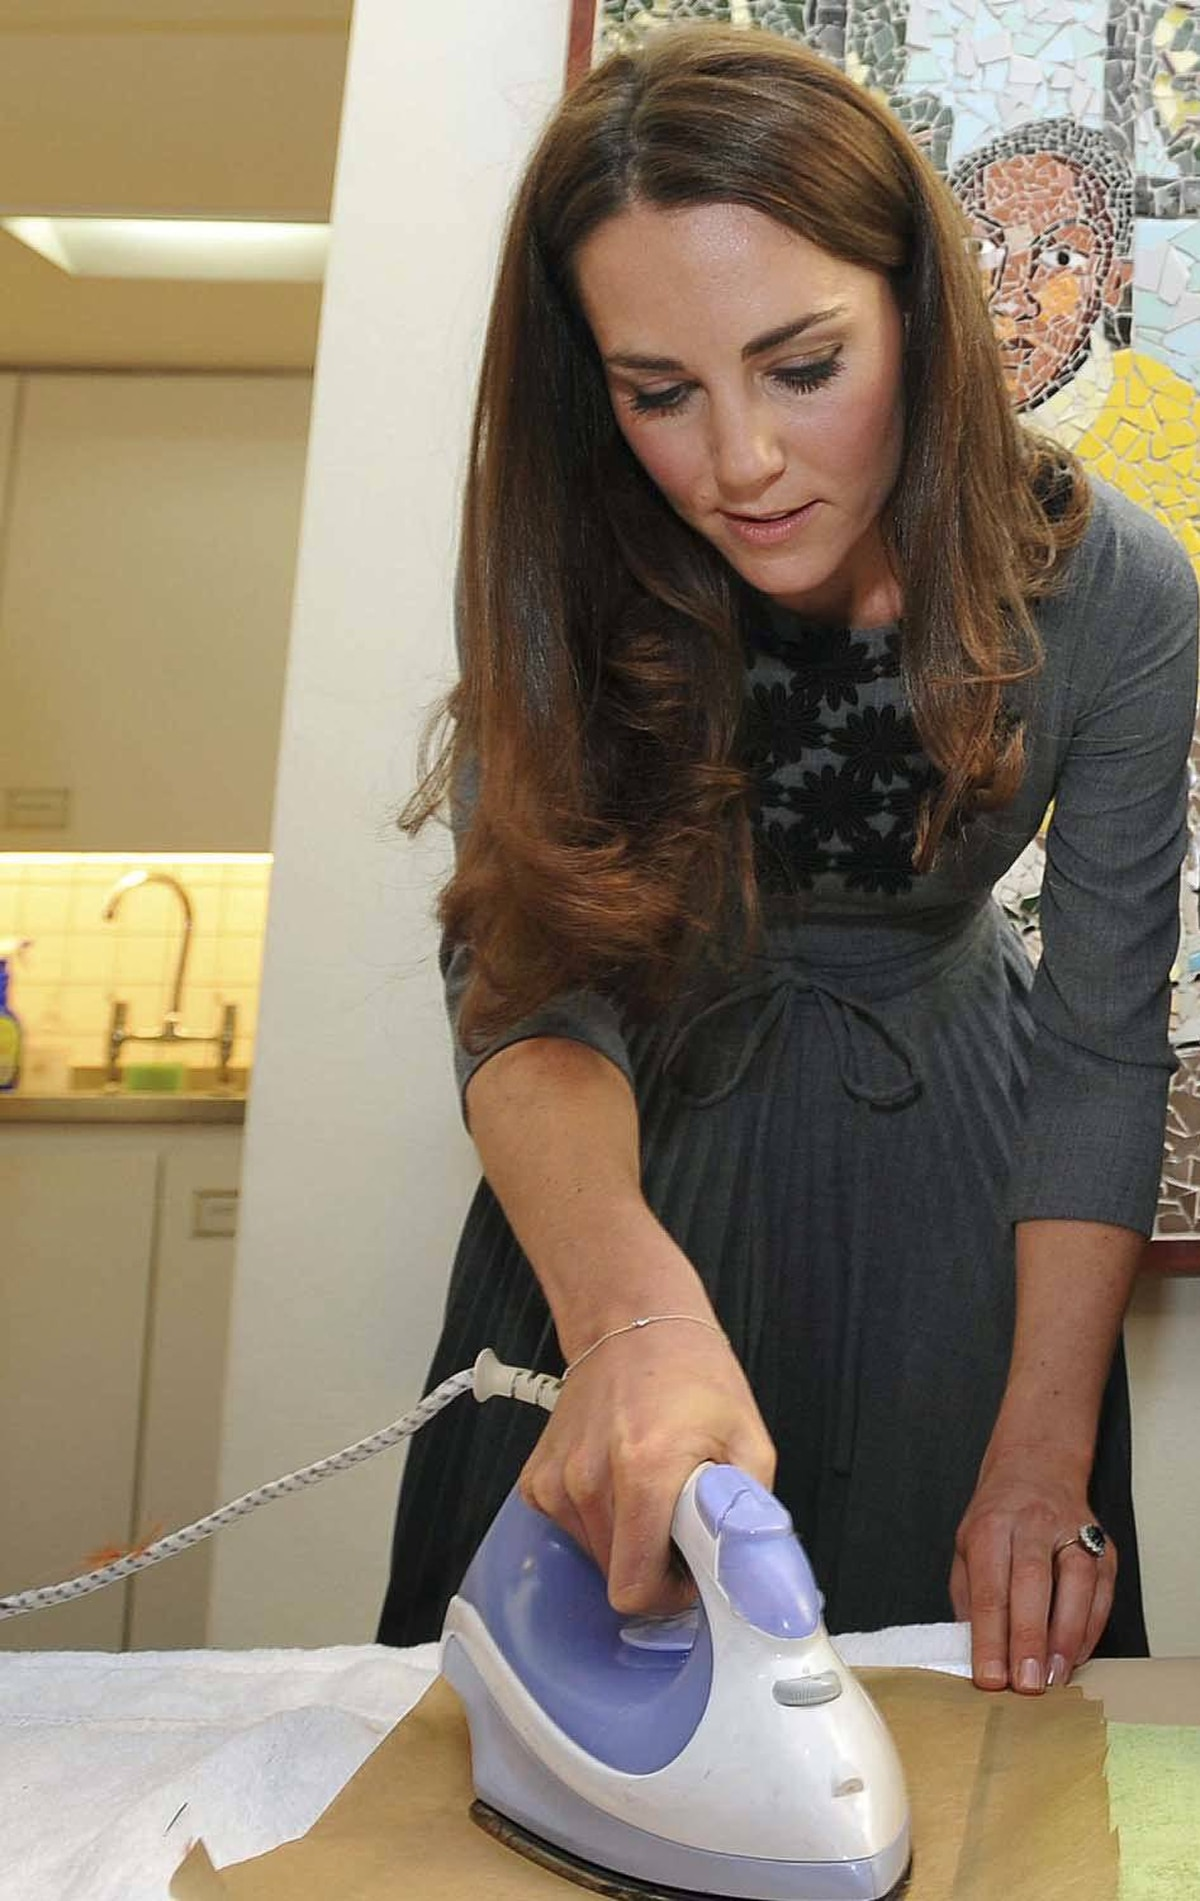 At the Dulwich Picture Gallery in London on March 15, she shows off her ironing skills in a grey Orla Kiely dress.